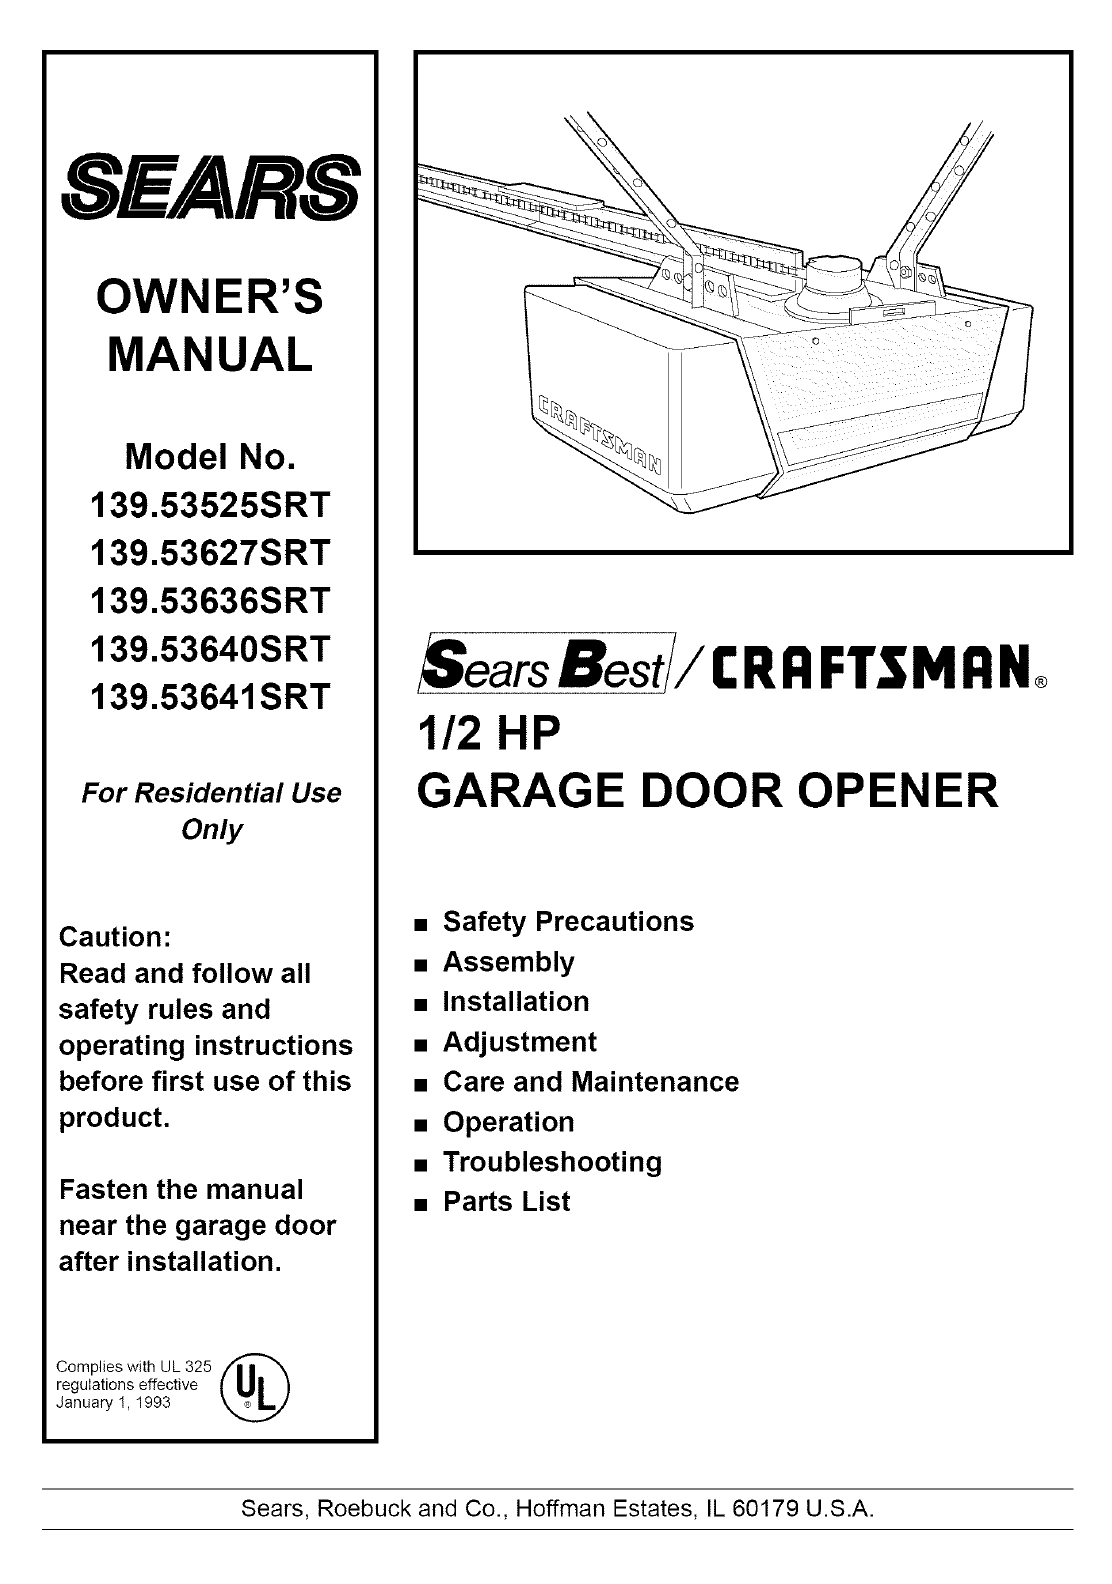 Sears Garage Door Opener 139 53636srt User Guide Manualsonline Com